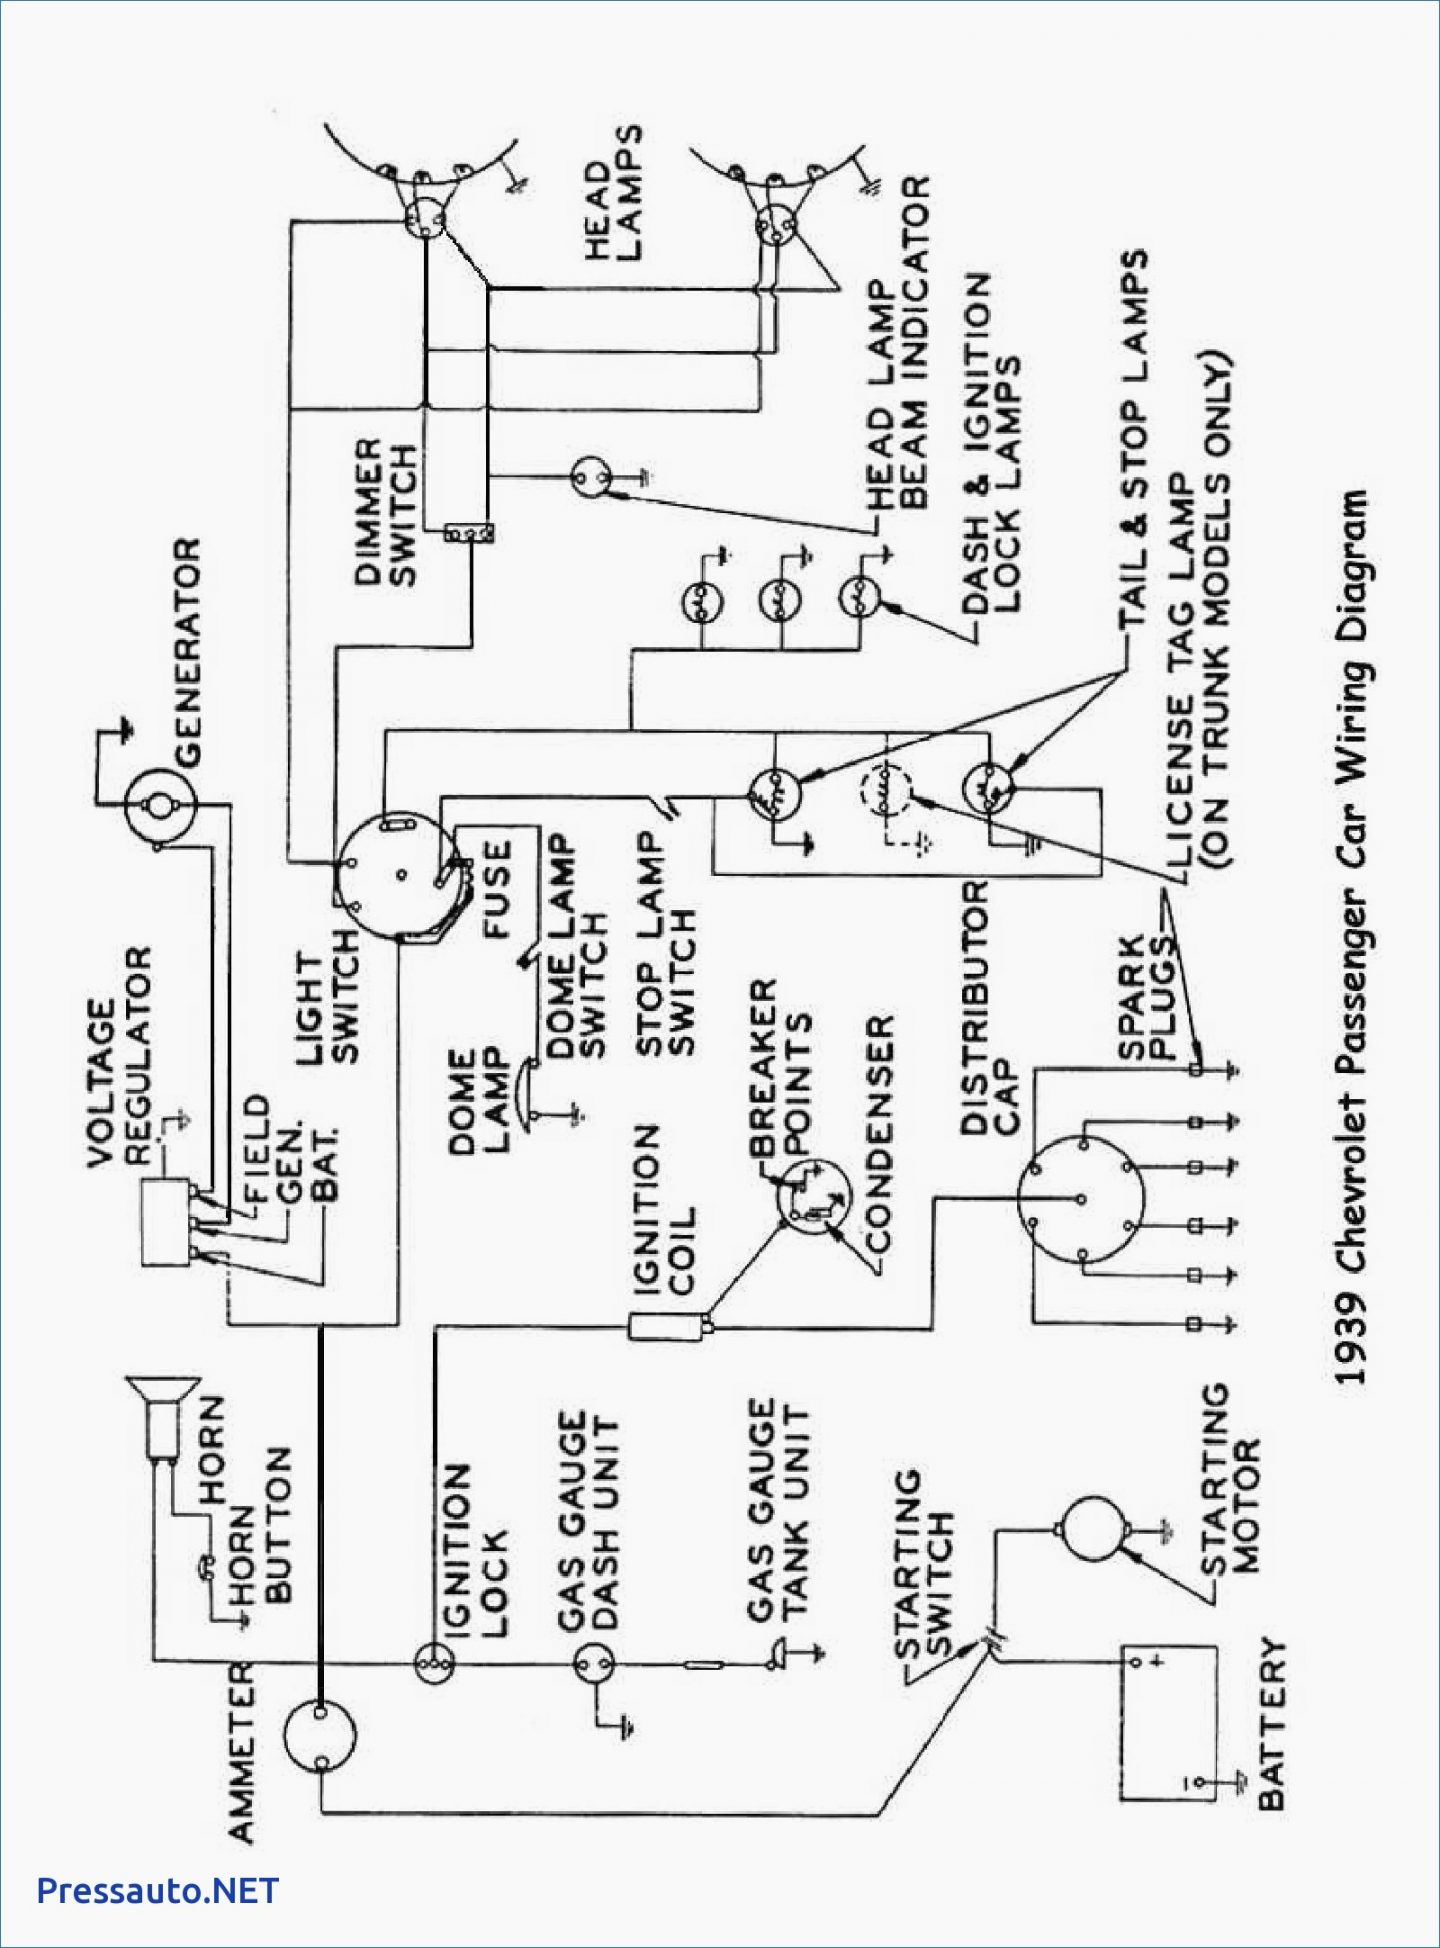 Cigarette Wiring Diagram Get Free Image About Wiring Diagram